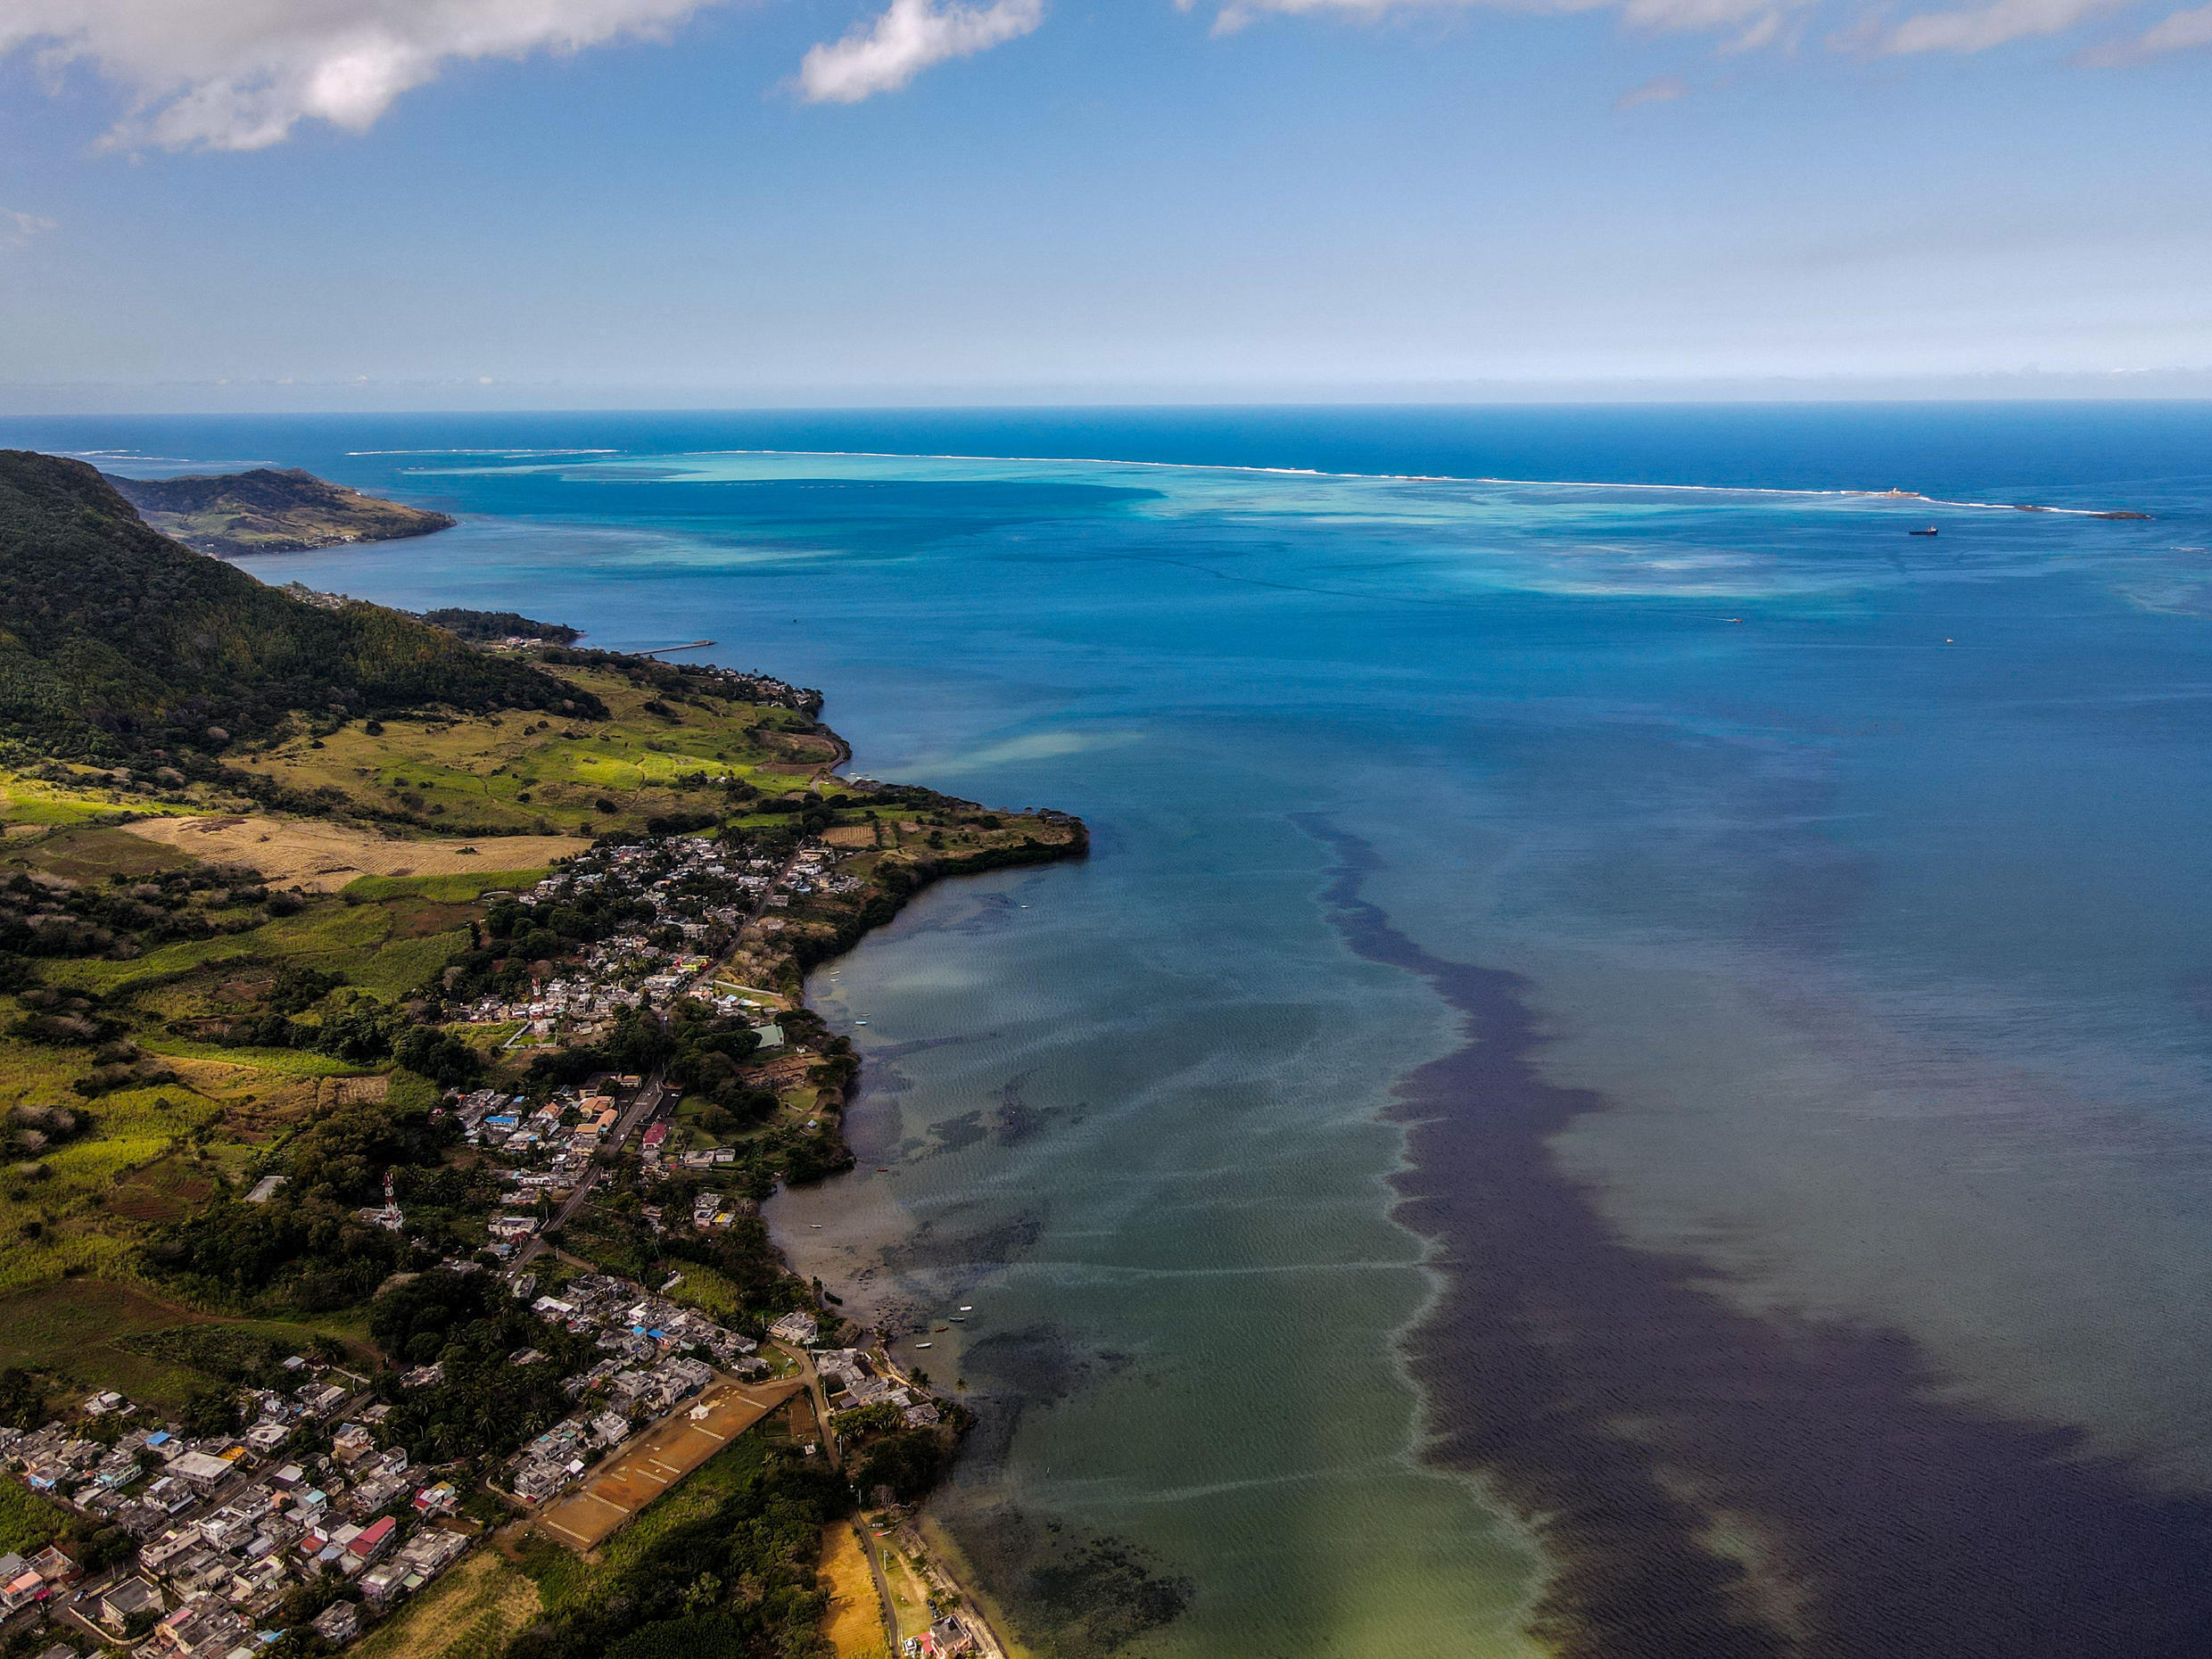 The Wakashio black oil spill moving sinuously off the coast of Vieux-Grand-Port, south east of Mauritius island.